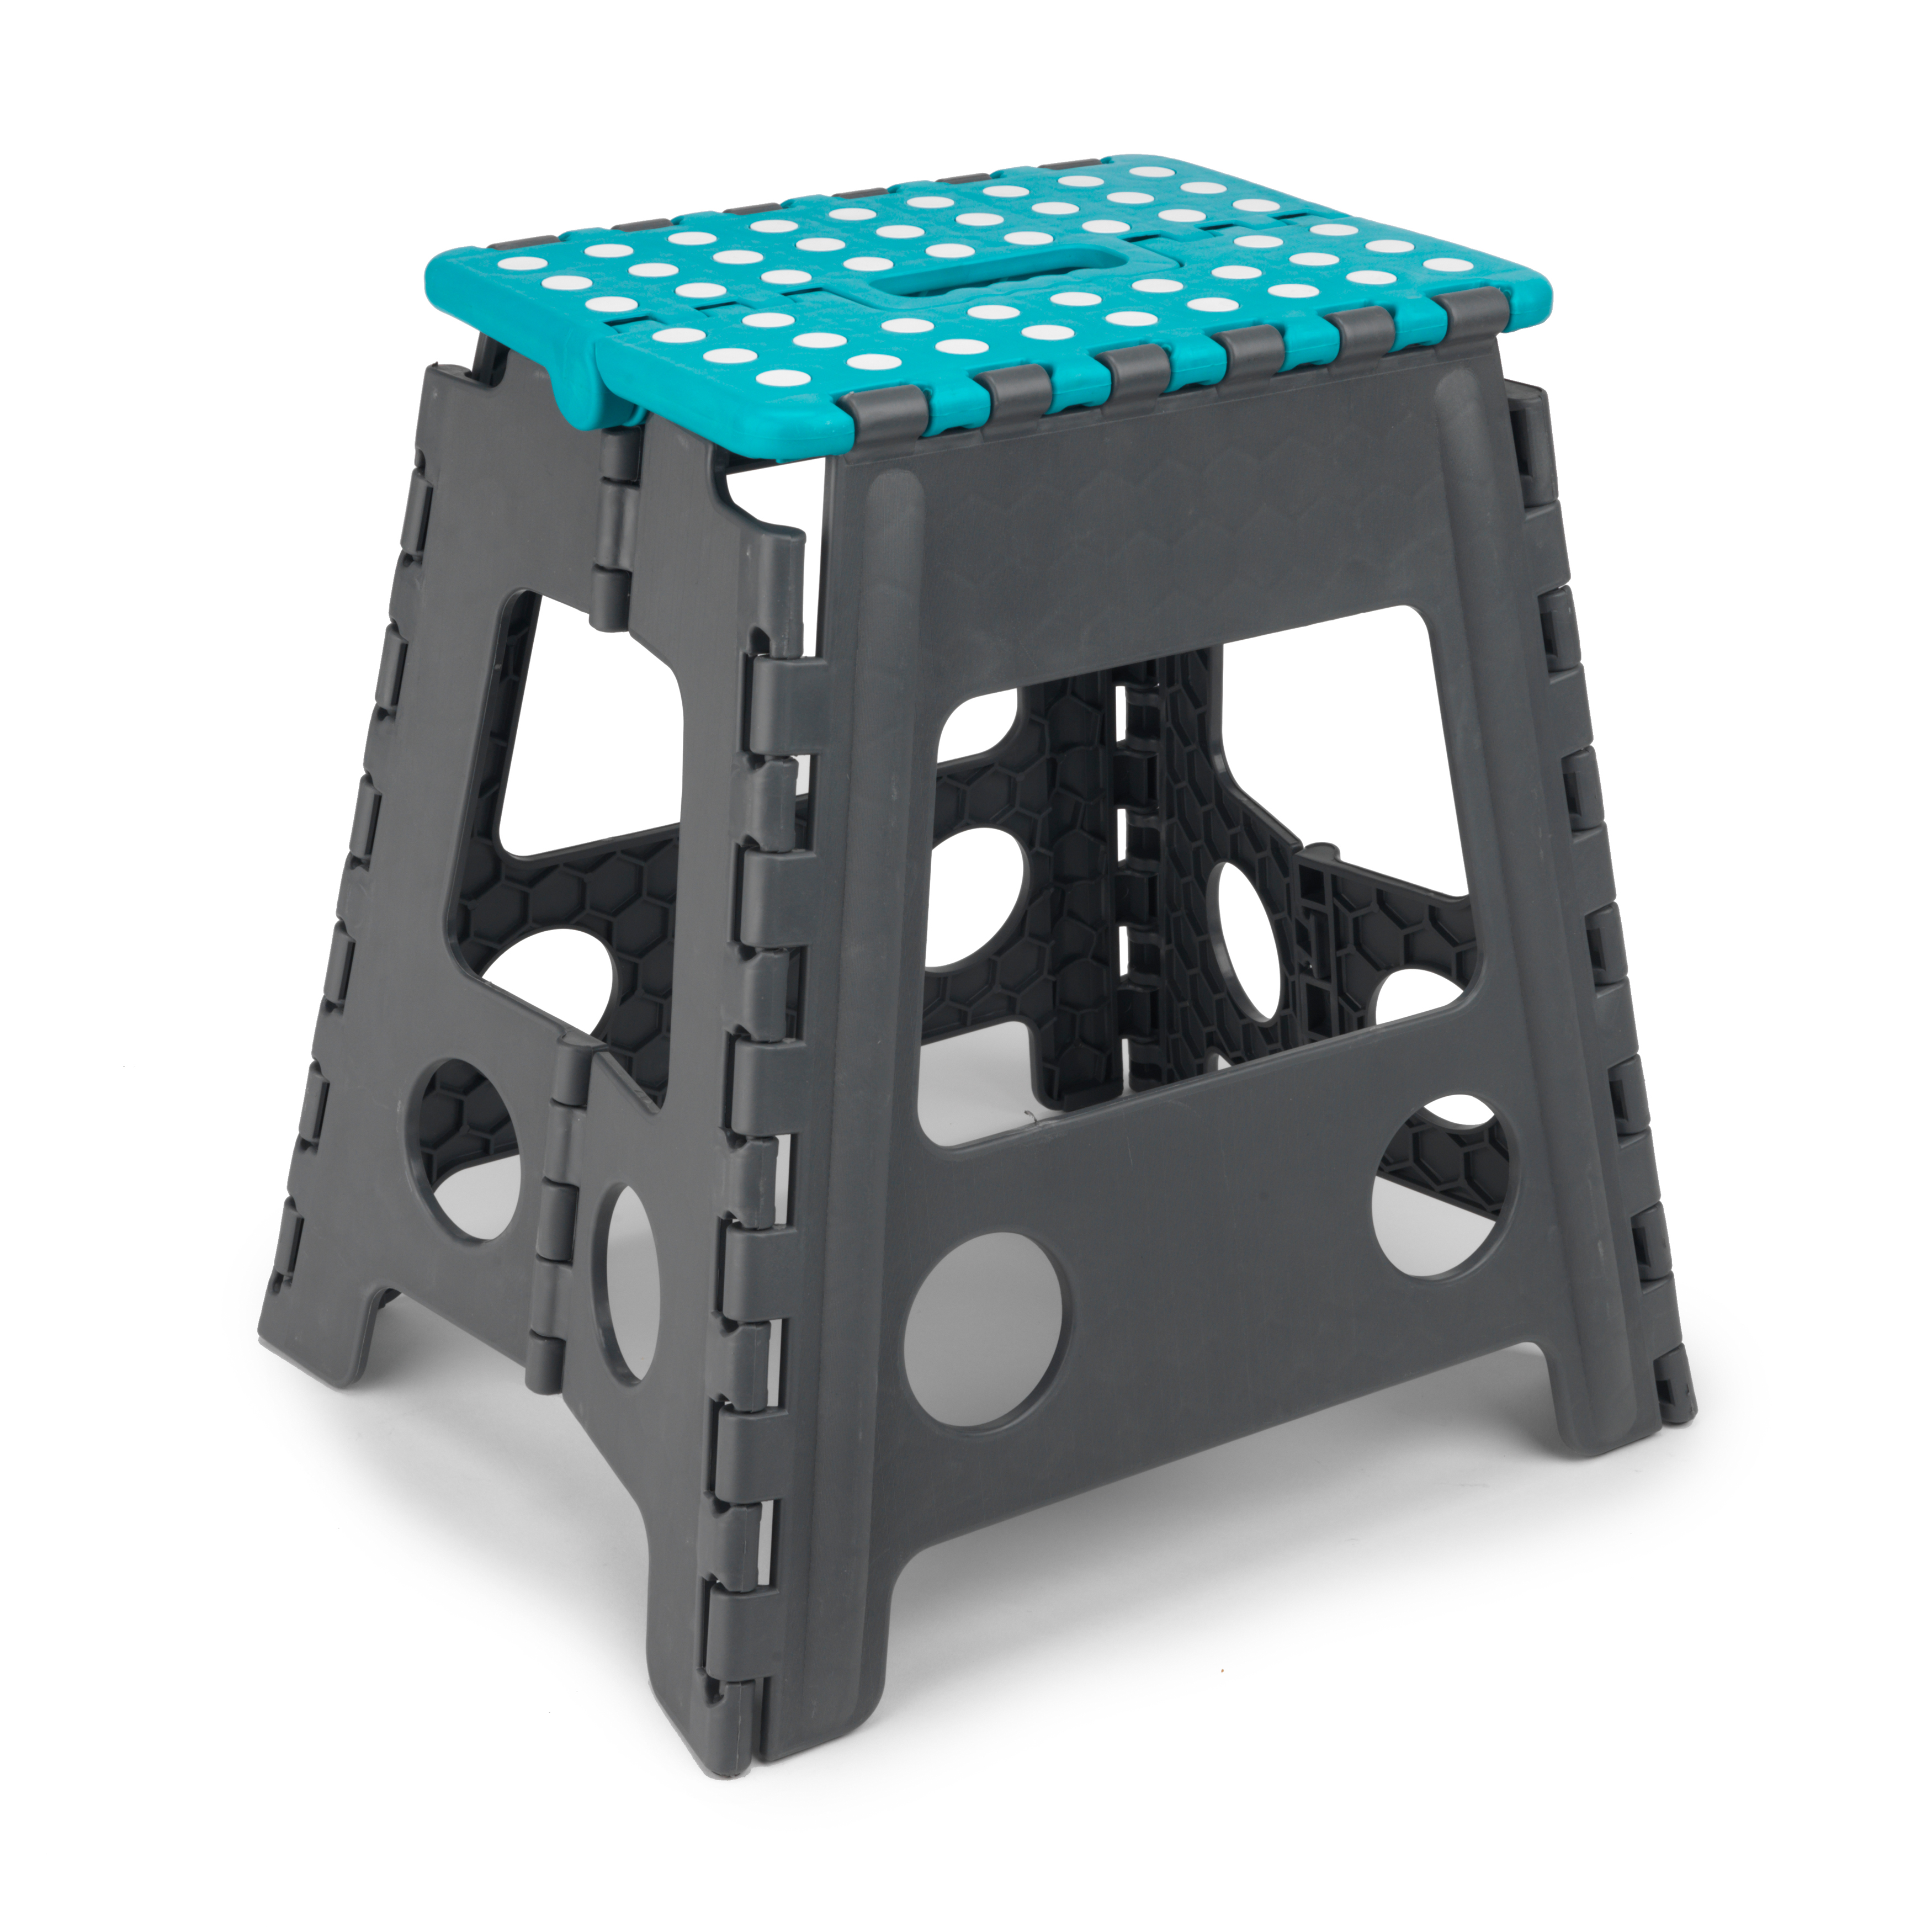 over zoom stool hover sz bamboo to kmart step product image